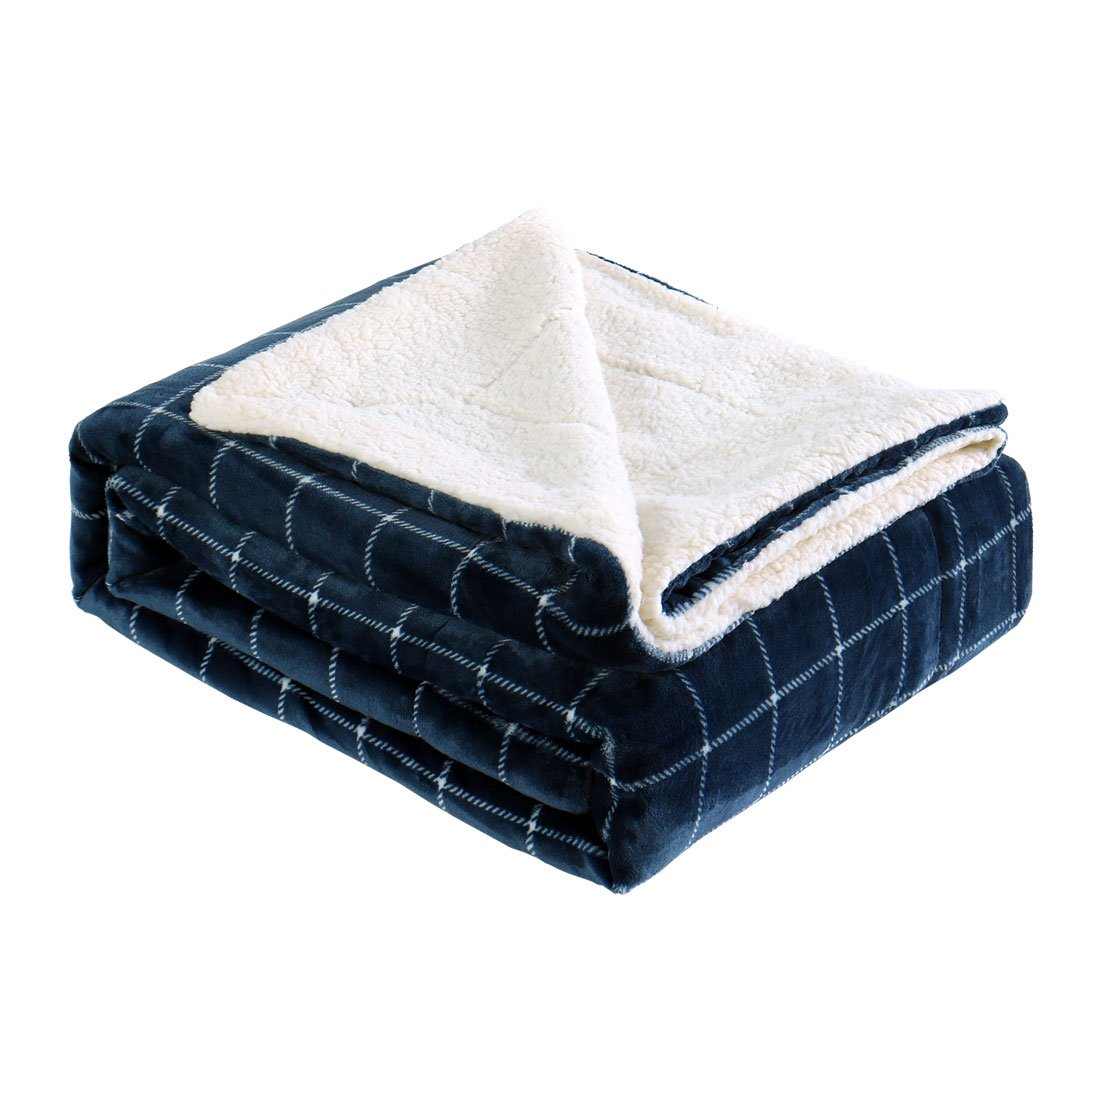 uxcell Flannel Fleece Reversible Blanket 520 GSM Super Soft Warm Plush Fuzzy Bedding Blankets for Bed Couch Anti-static Navy Blue Plaid Queen(78'' x 90'')